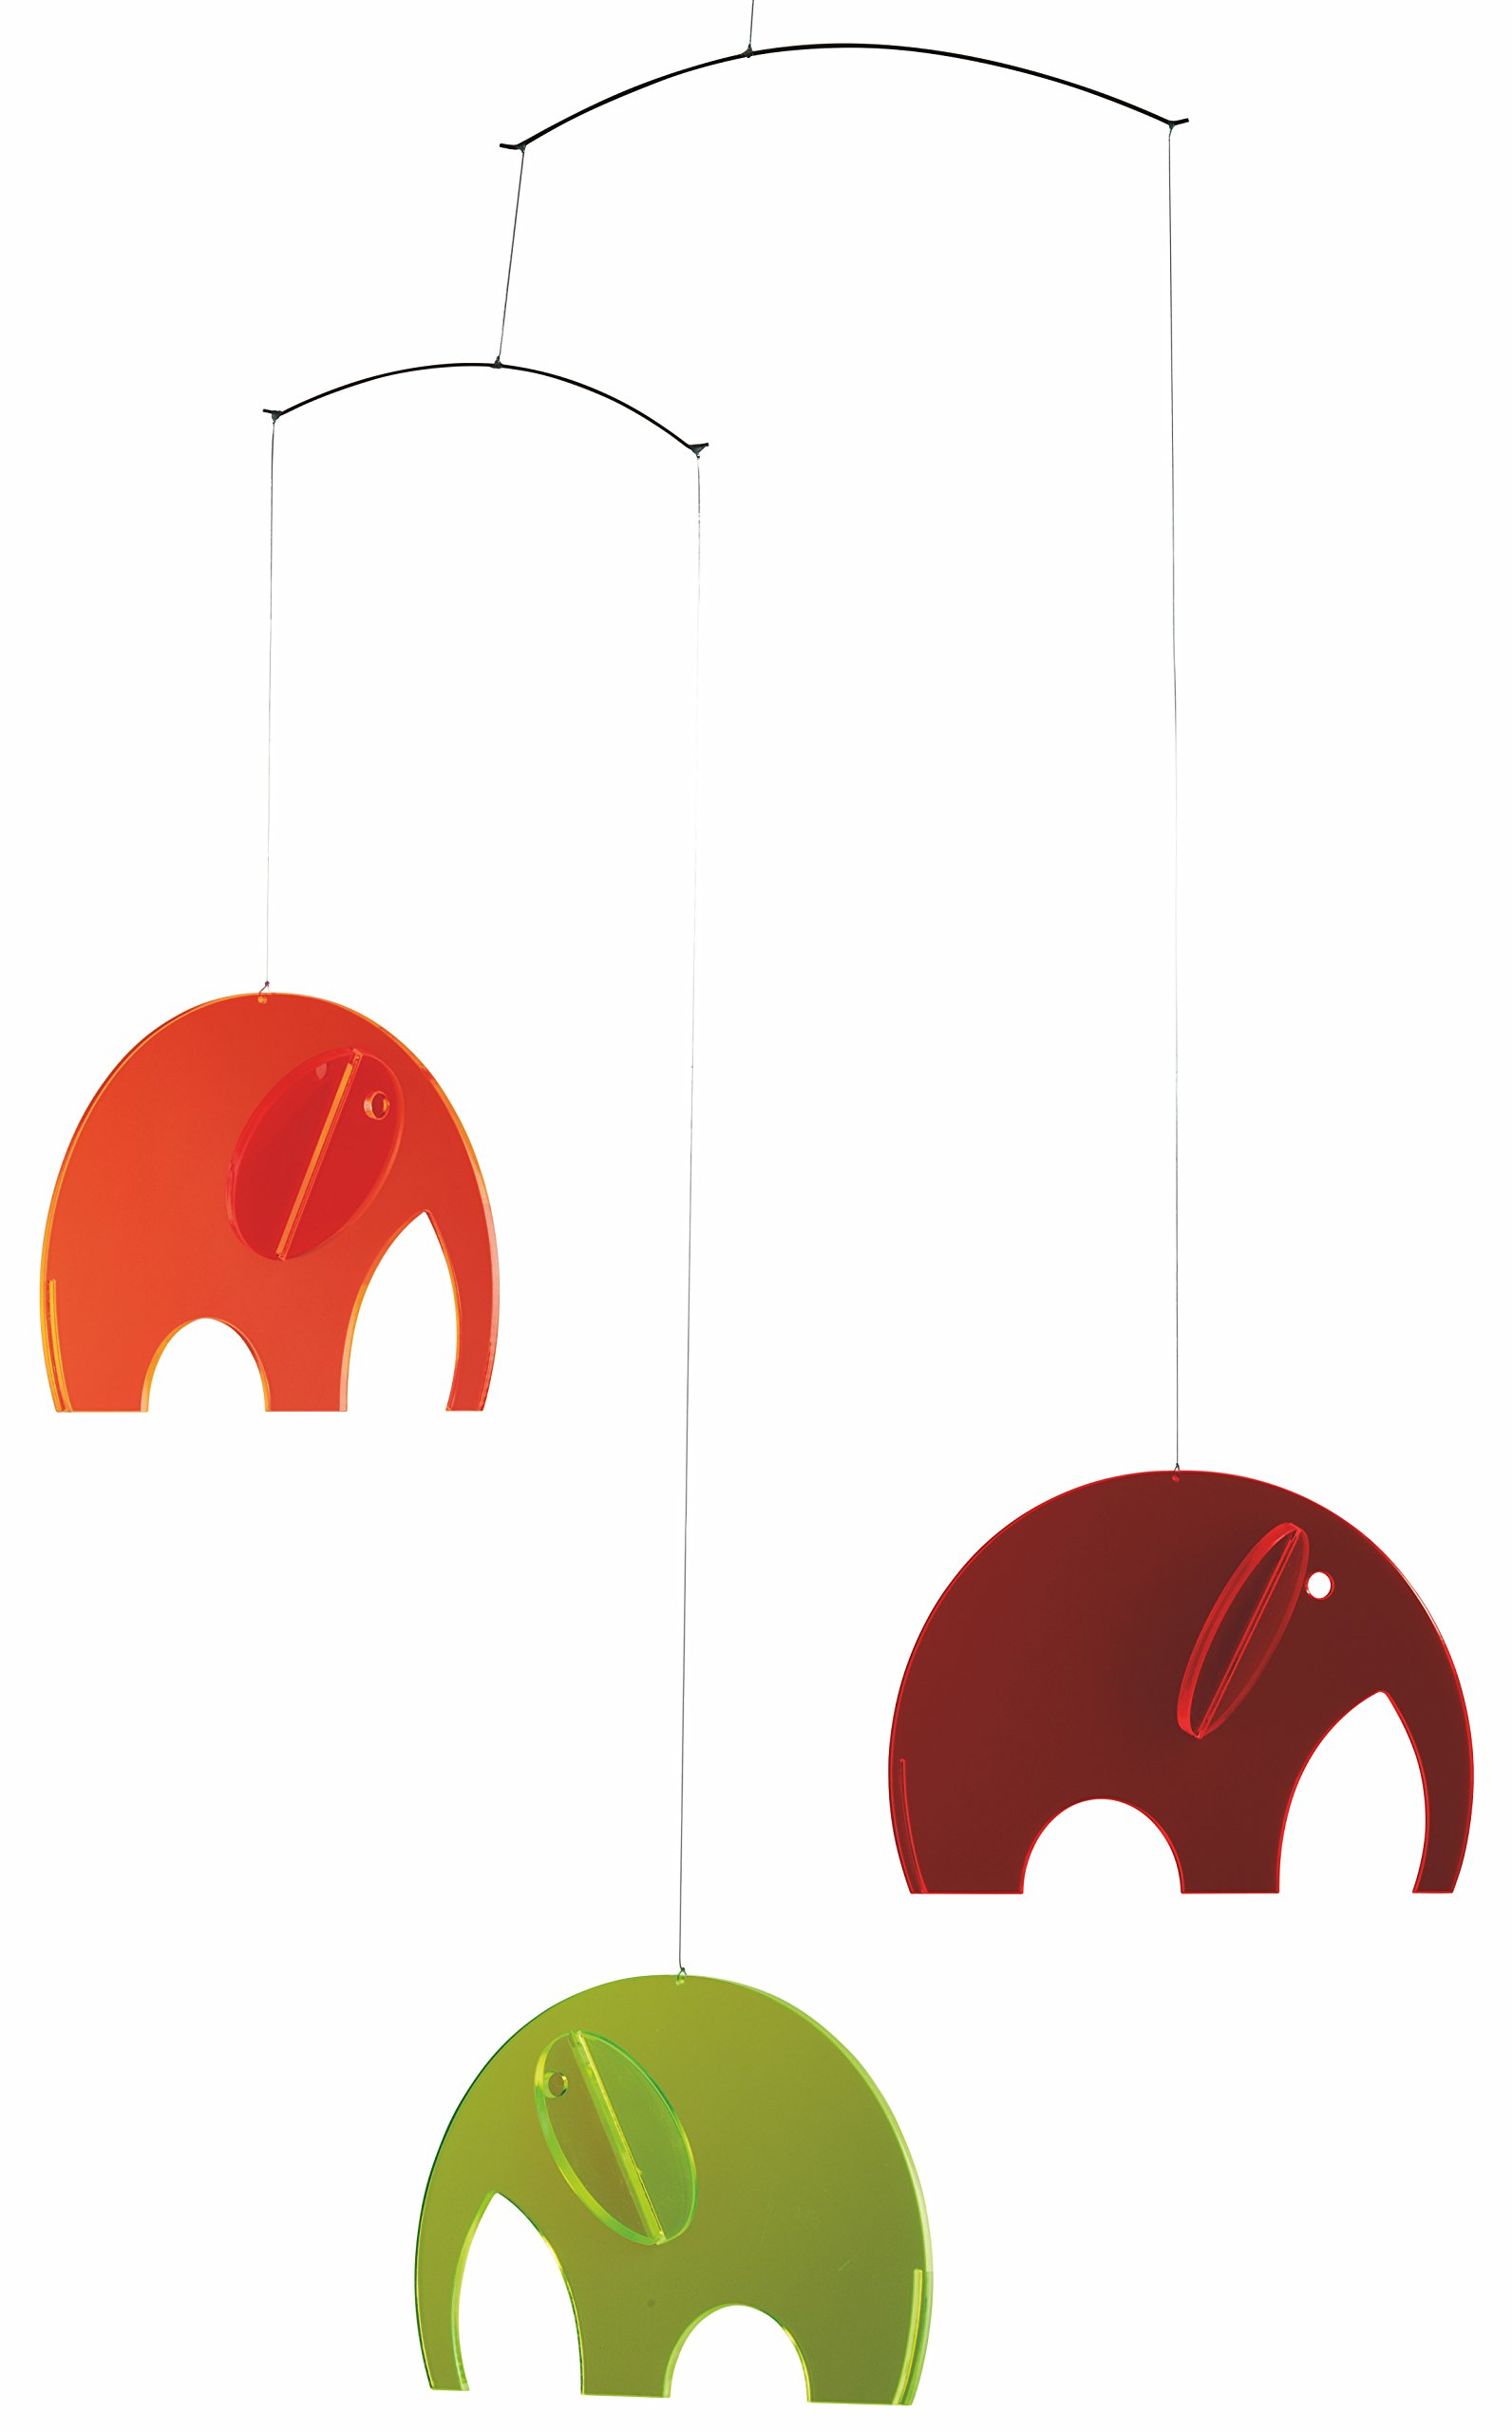 Elephant Plexi Hanging Mobile - 24 Inches Plastic - Handmade in Denmark by Flensted